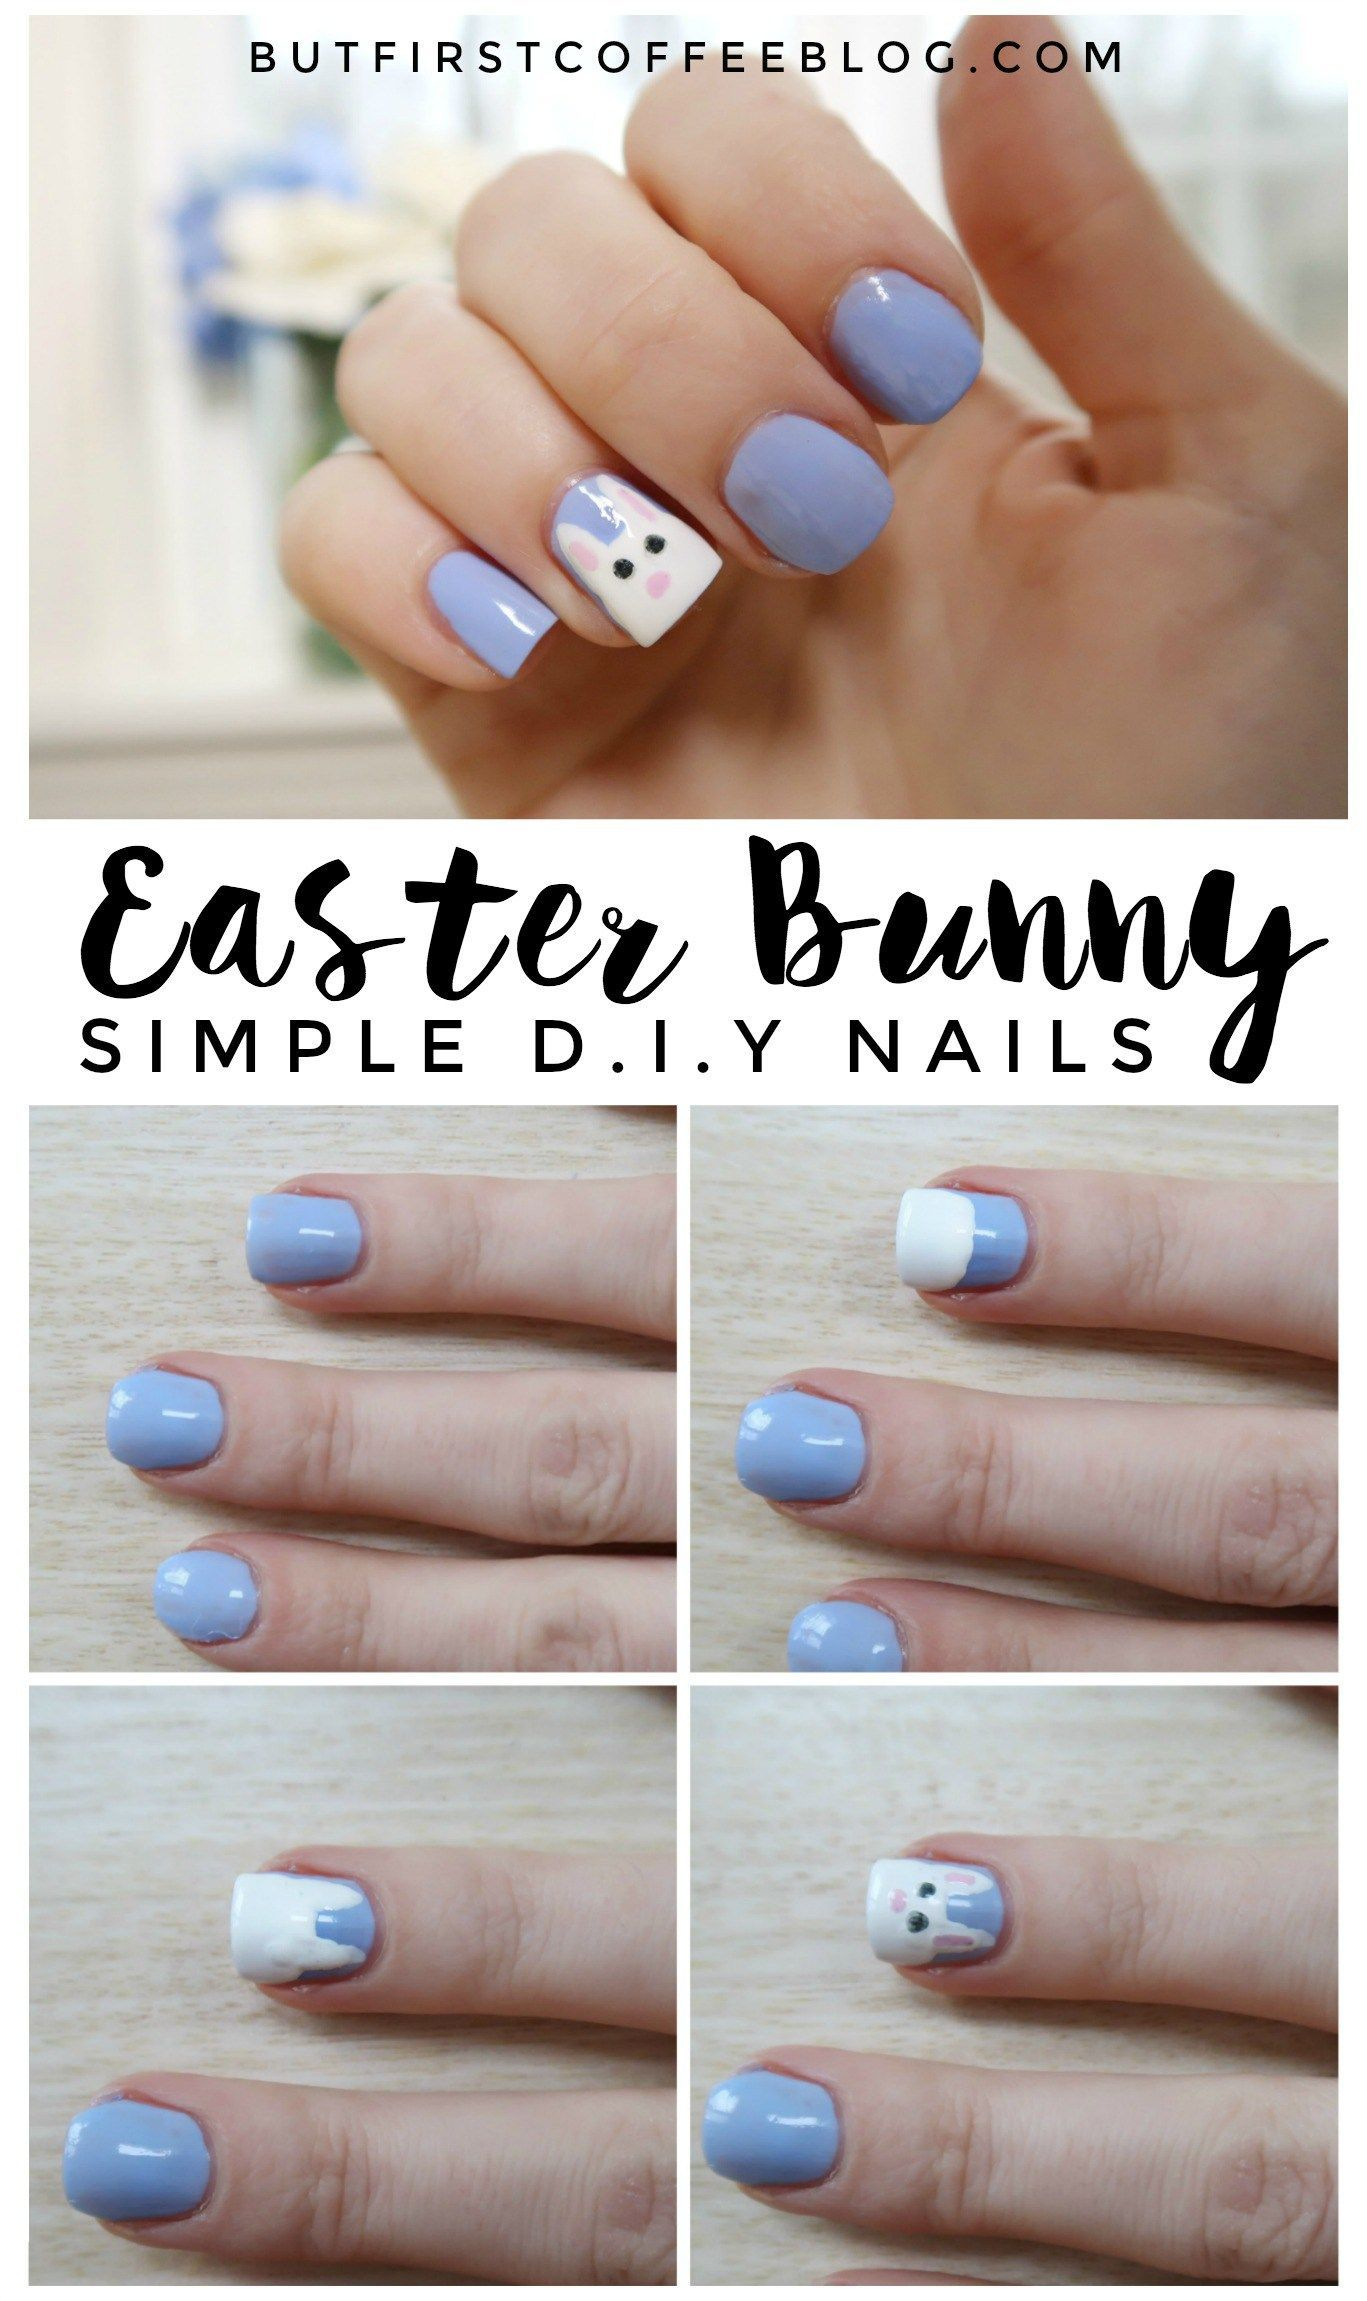 61 Easy And Simple Easter Nail Art Designs Stayglam Easter Nail Art Designs Easter Nail Art Easter Nails